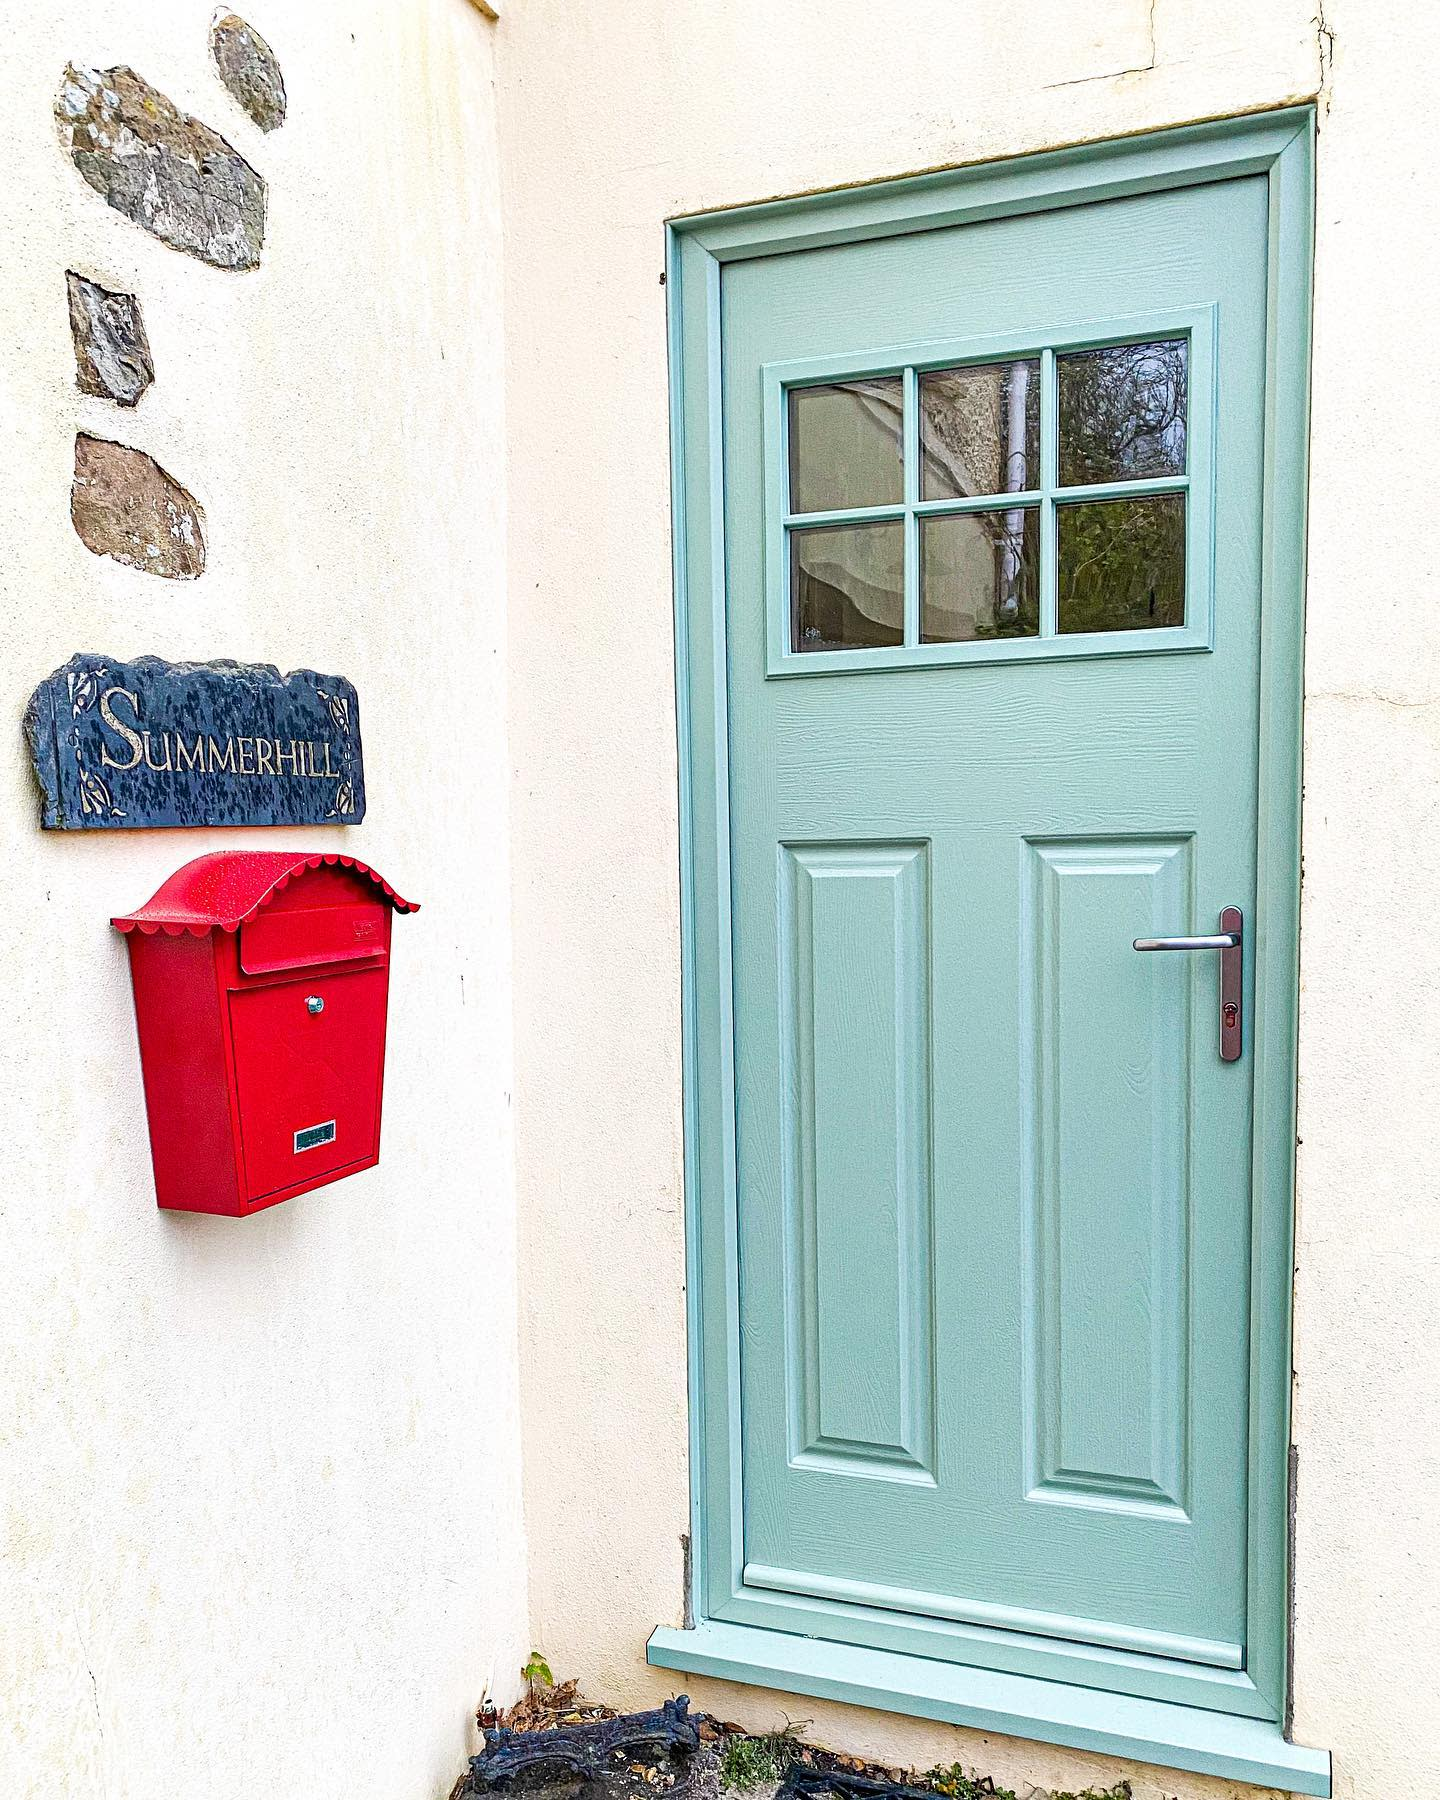 Pastel Front Door Color Ideas -home.at.summer.hill